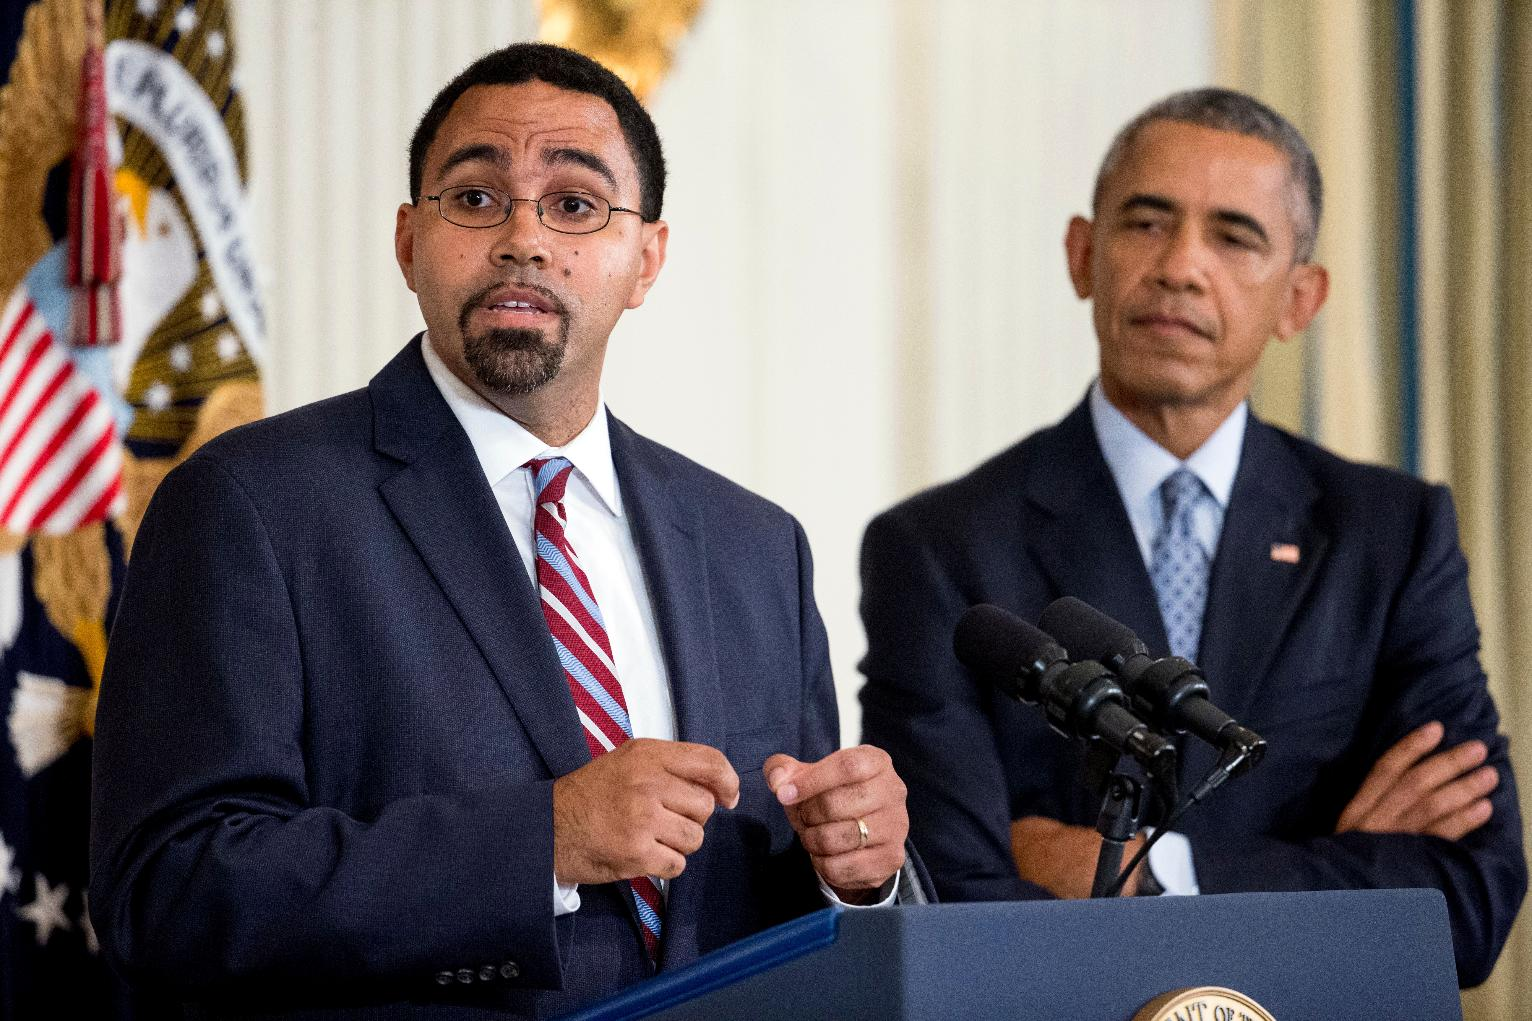 United States Department of Education, John B King, African American Education, Black Education, KOLUMN Magazine, KOLUMN